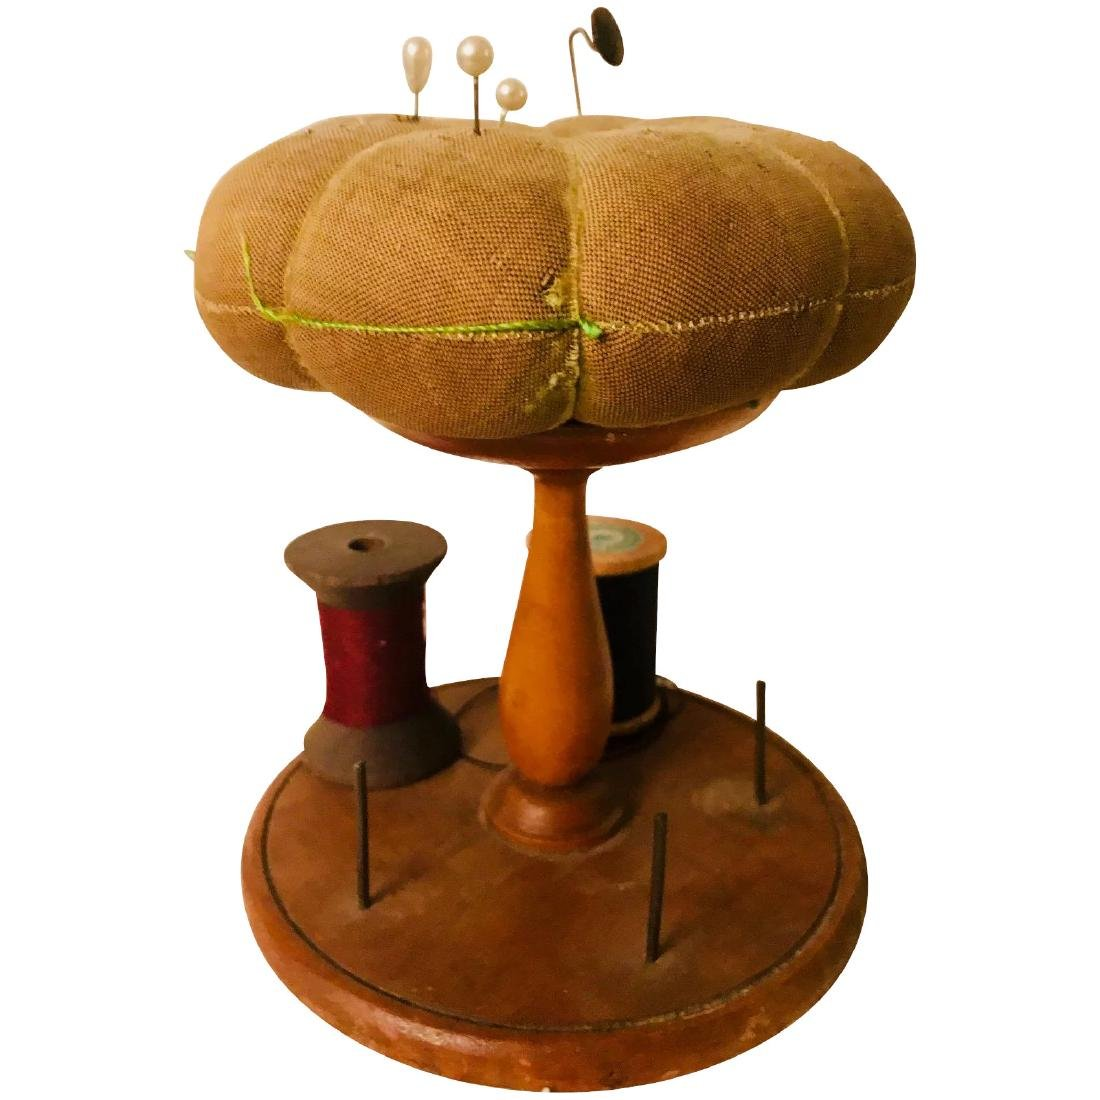 Shaker Spool Stand & Pincushion, c. 1900